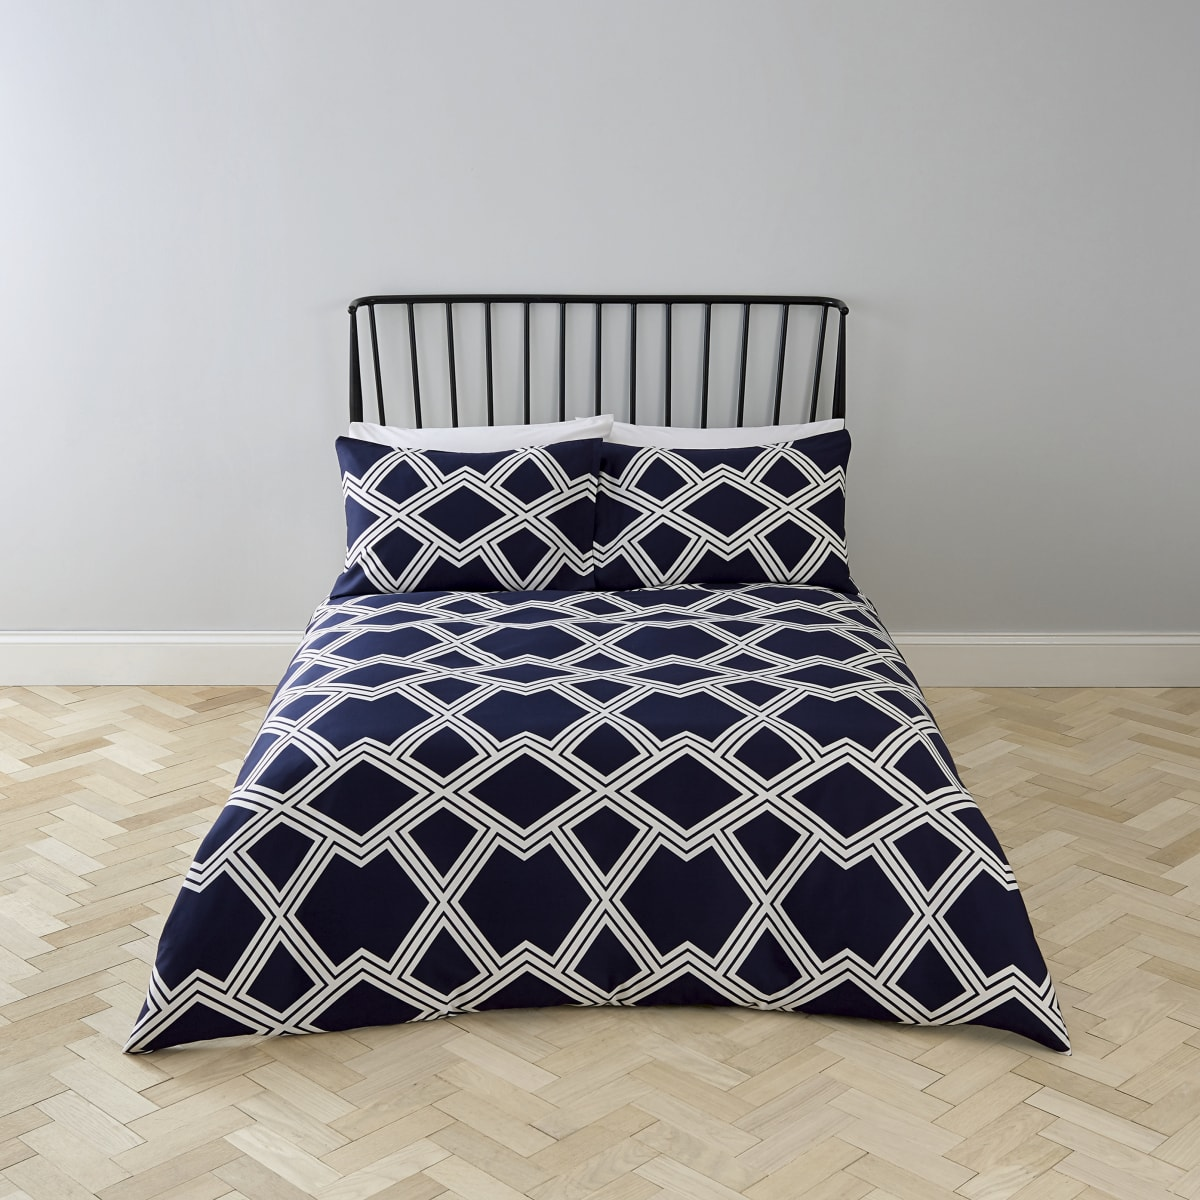 Navy geo print double duvet bed set